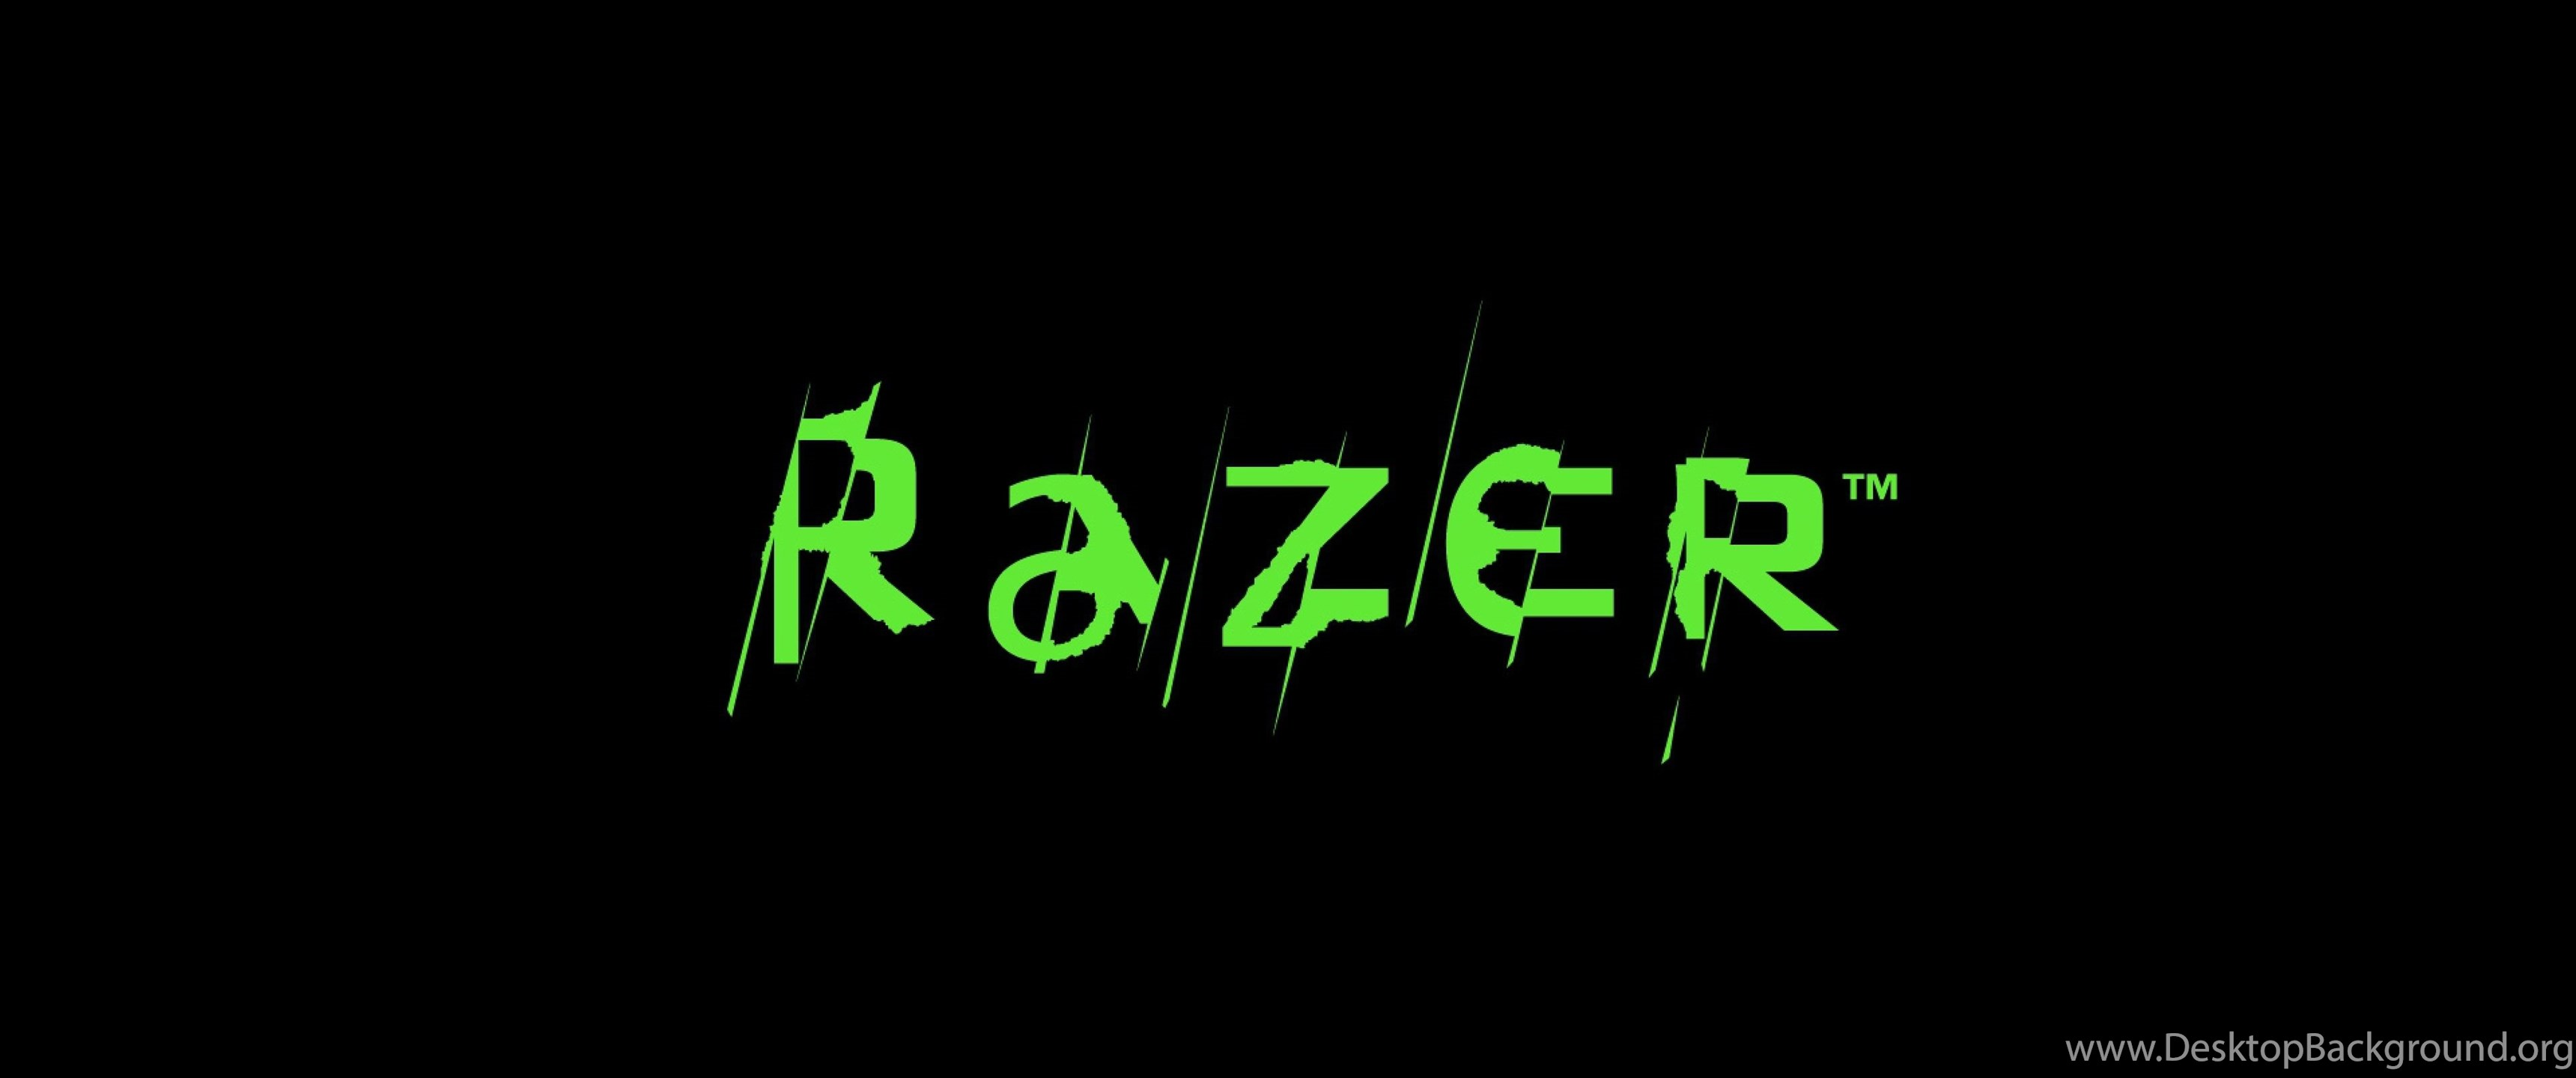 4k Ultra Hd Razer Wallpapers Hd Desktop Backgrounds 3840x2160 Desktop Background